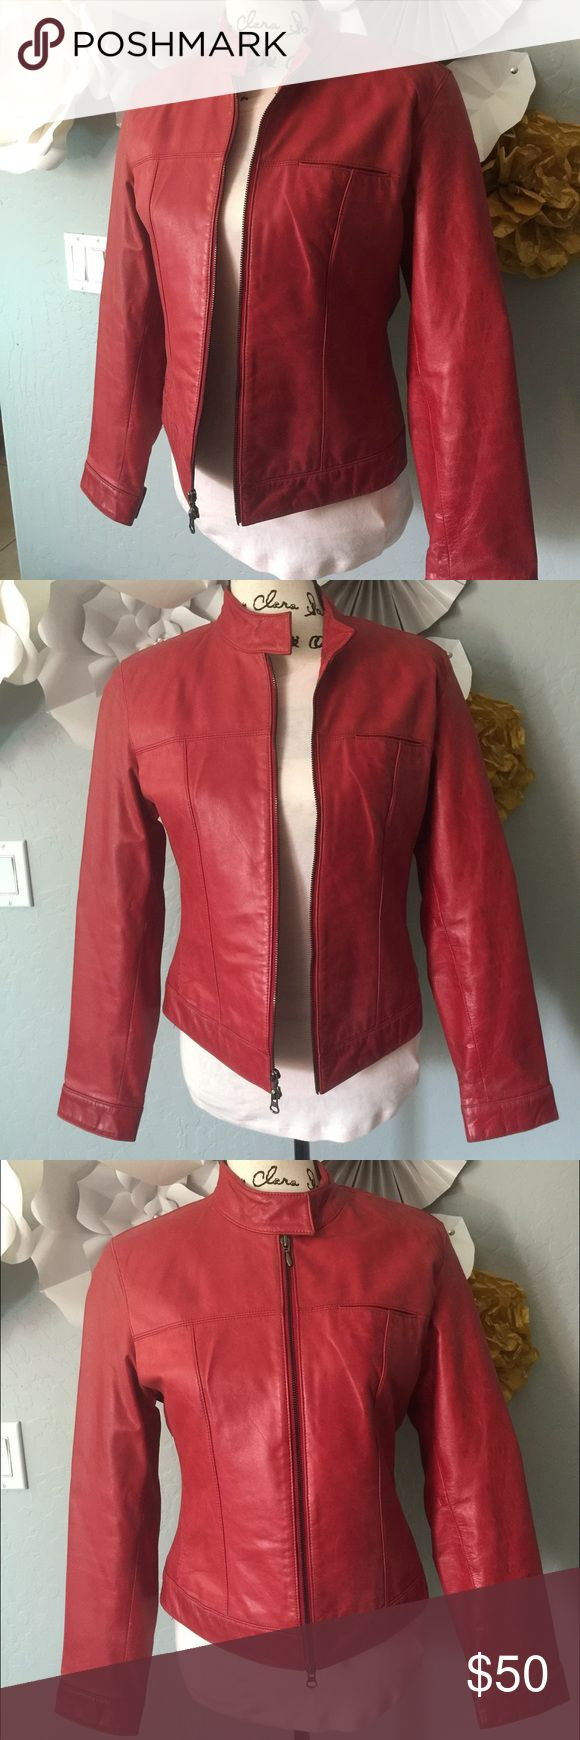 Vintage red leather jacket Red leather jacket, broken in but still in good shape and in style Jackets & Coats